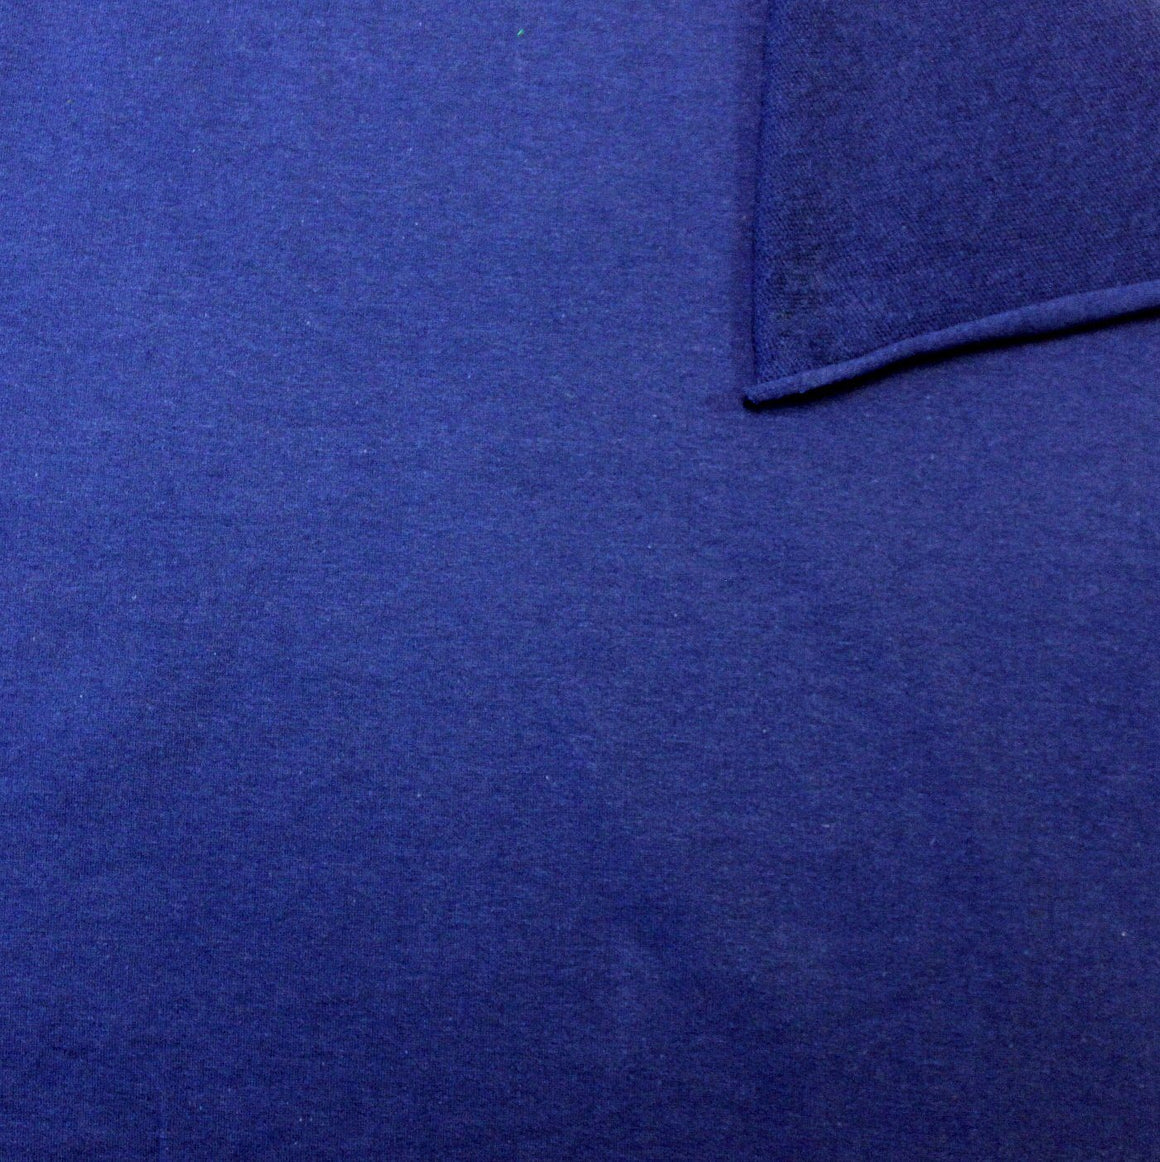 Solid Royal Blue 4 Way Stretch French Terry Knit Fabric With Spandex, 1 Yard - Raspberry Creek Fabrics